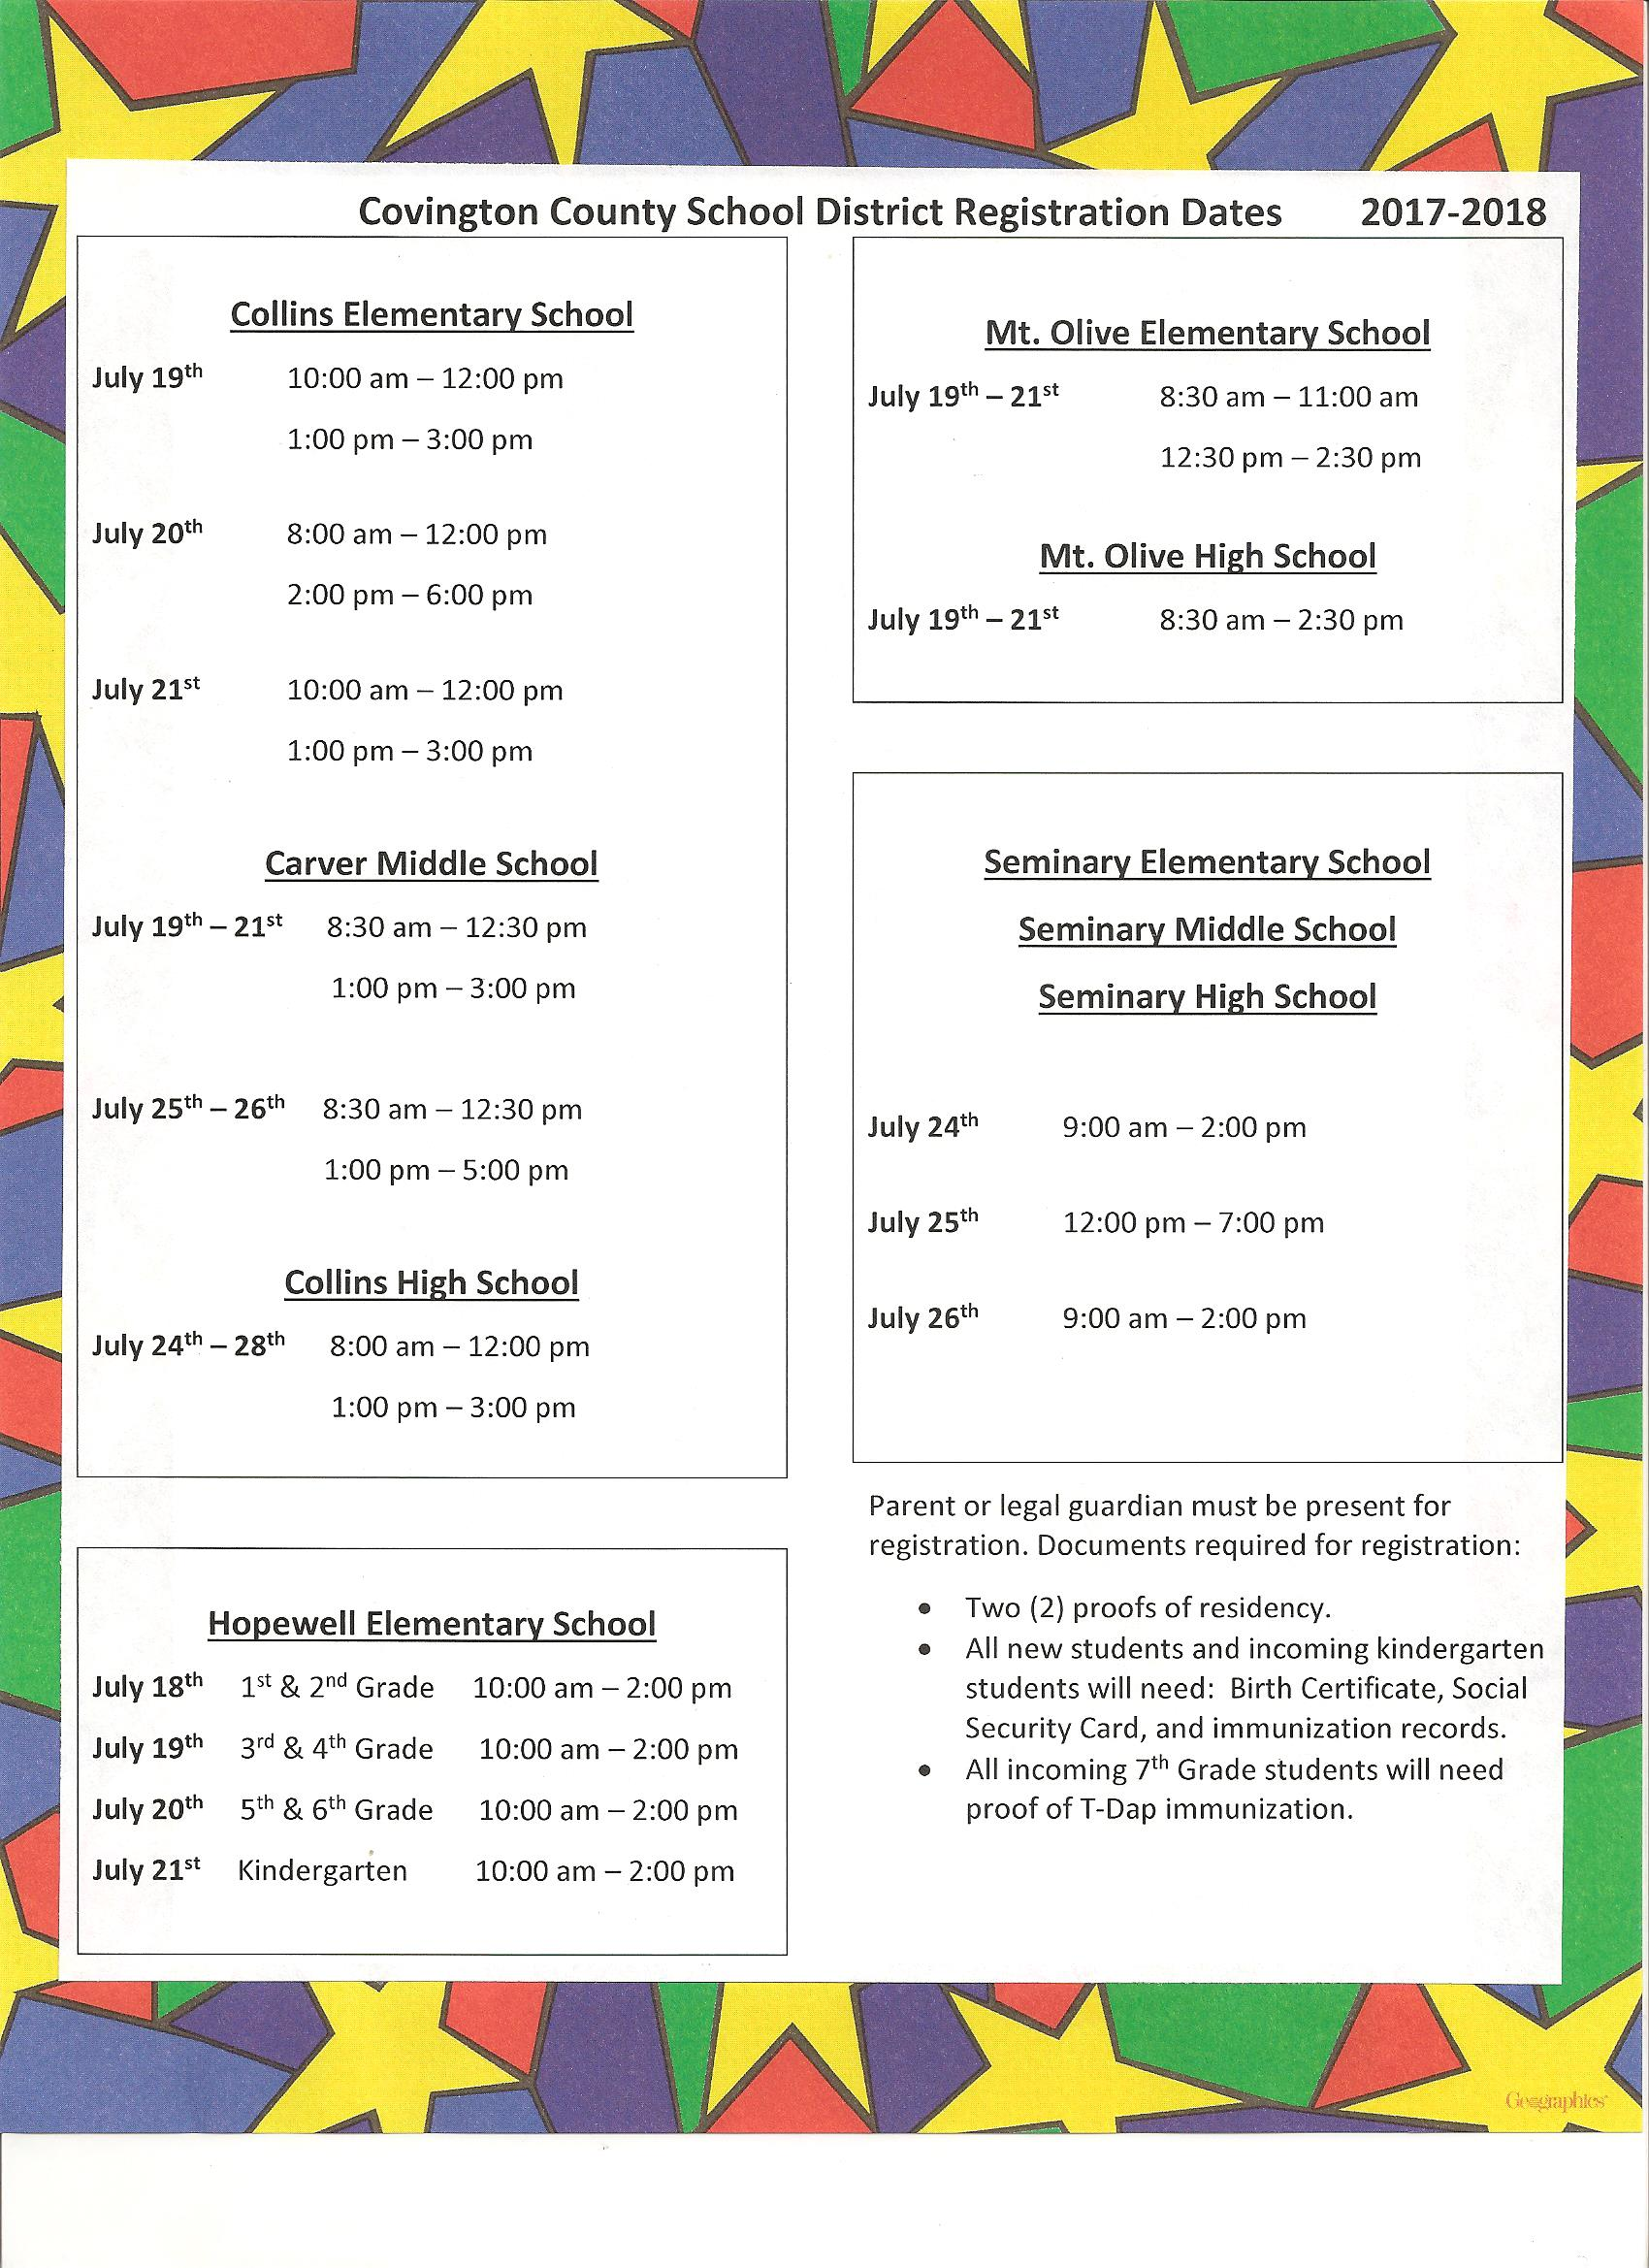 CCSD Summer Registration Schedule, 2017